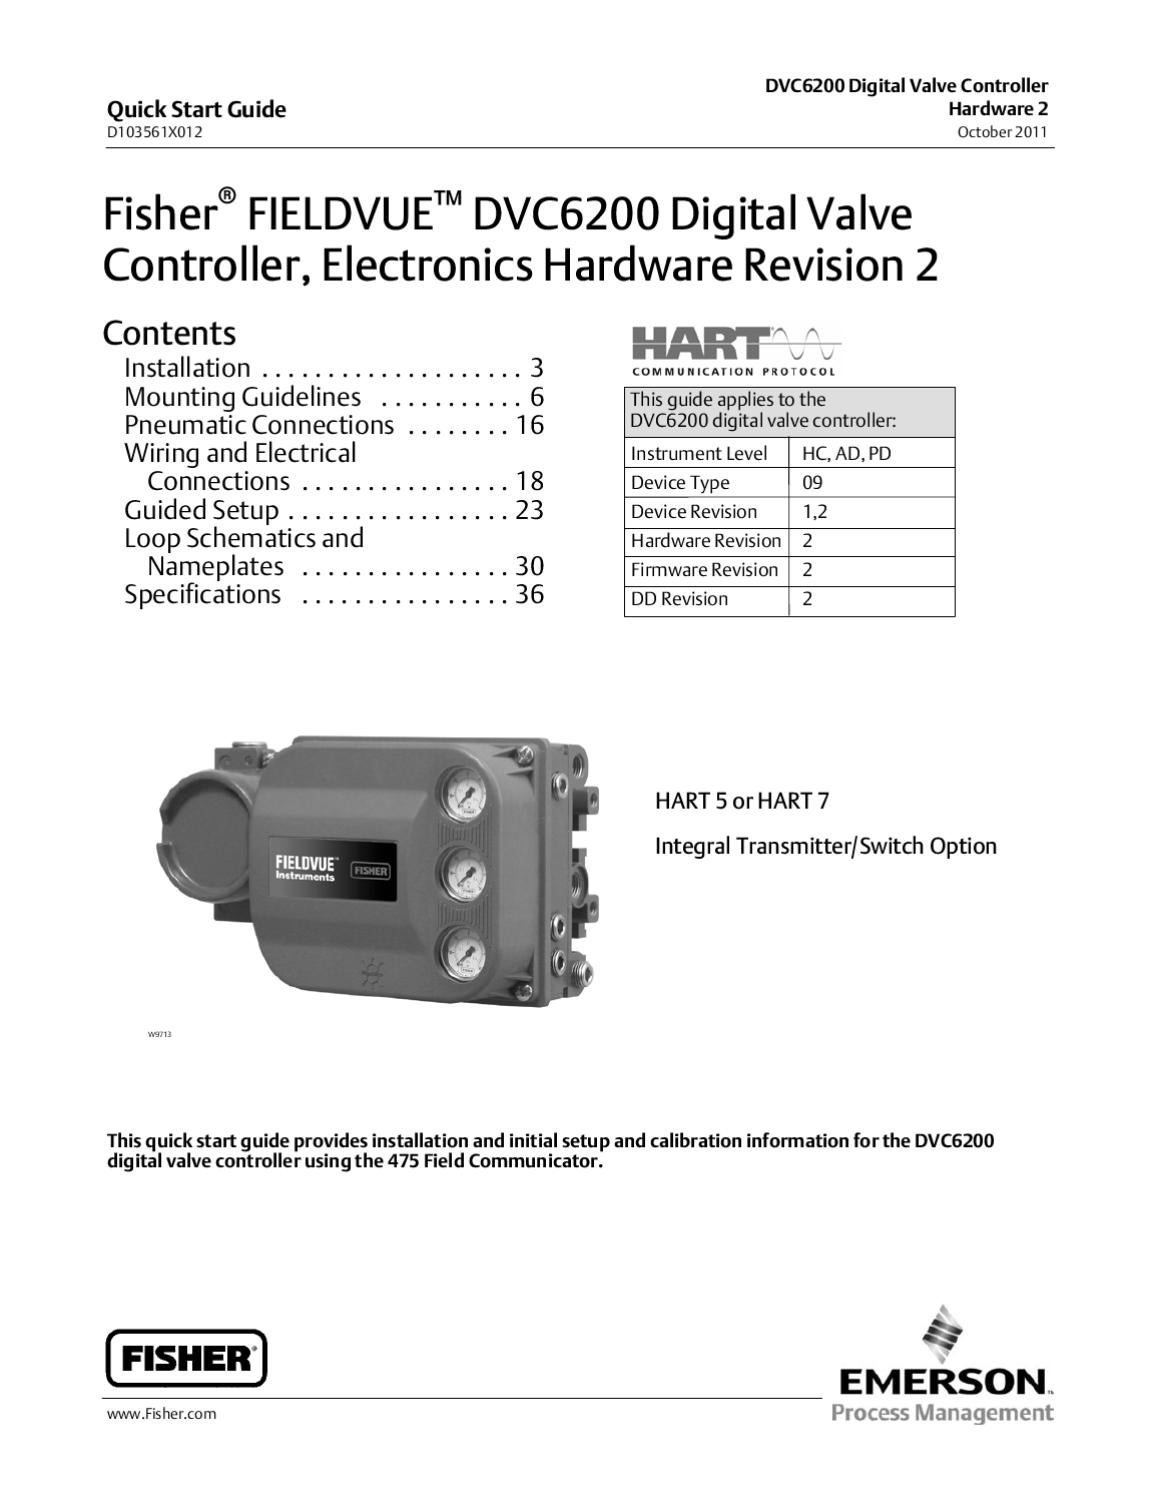 page_1 dvc6200 quick start guide elctrncs hrdwre rev 2 oct 2011 by rmc fisher dvc 2000 wiring diagram at nearapp.co